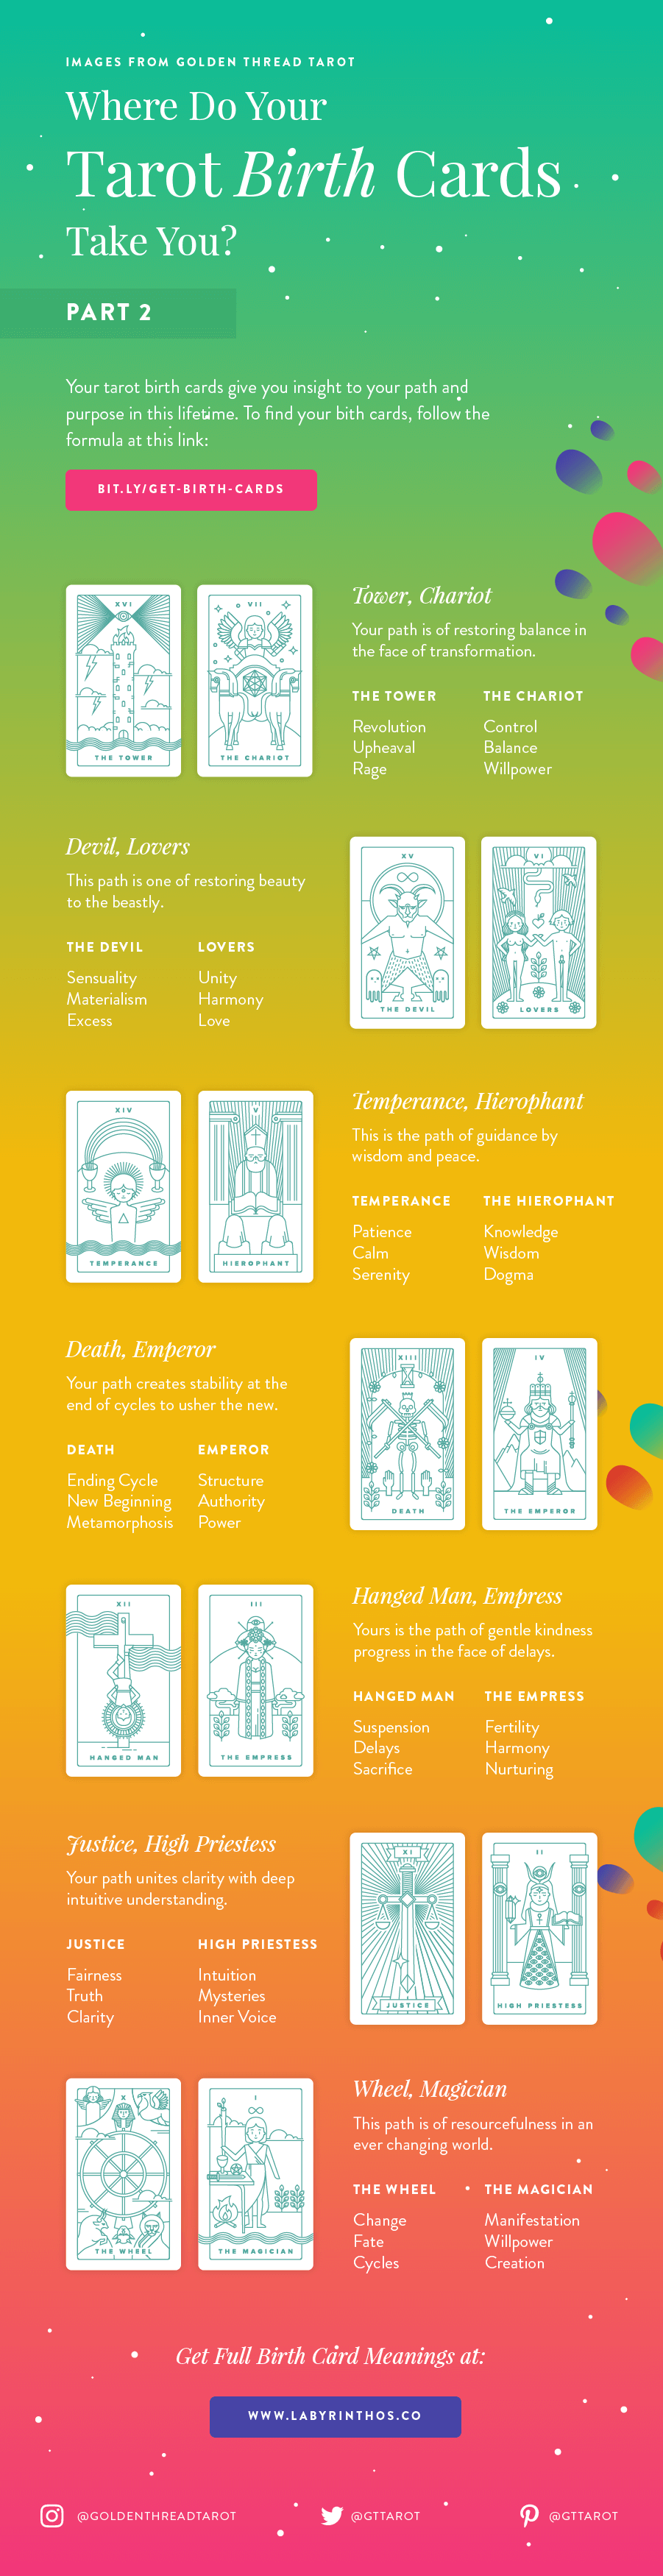 Tarot Birth Card Meanings Infographic - Part 2